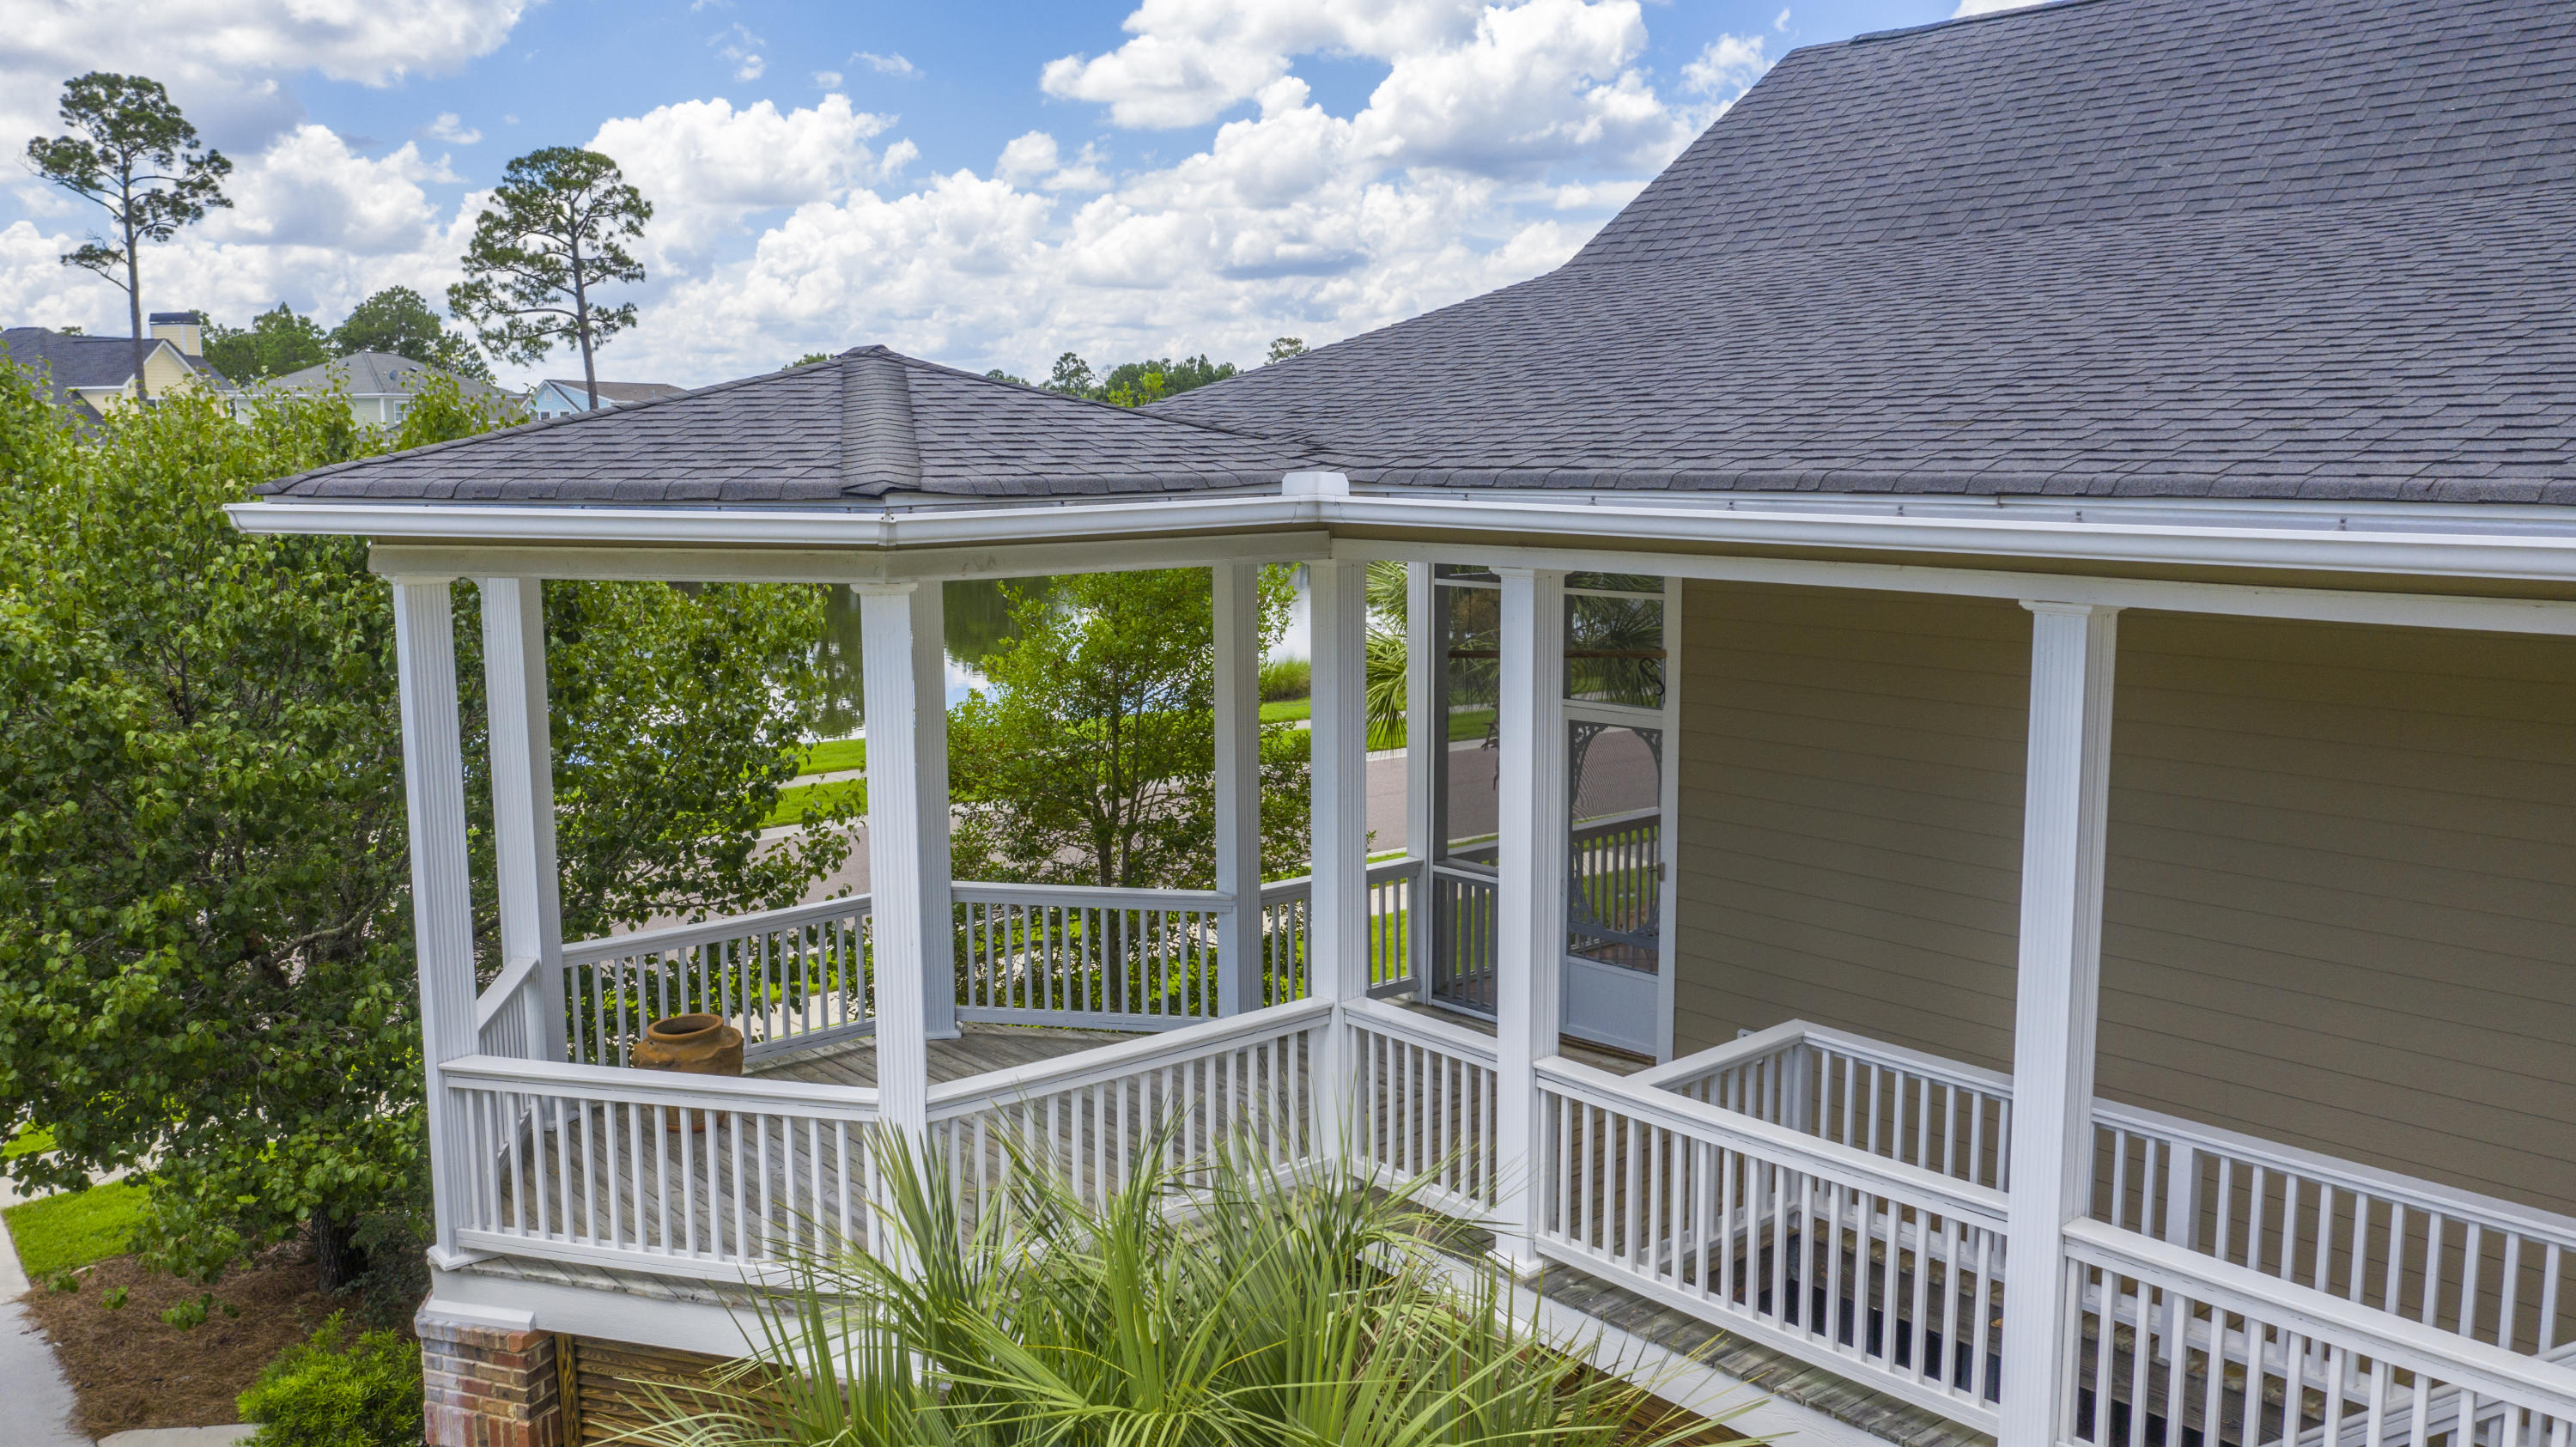 Rivertowne Country Club Homes For Sale - 1721 Rivertowne Country Club, Mount Pleasant, SC - 11